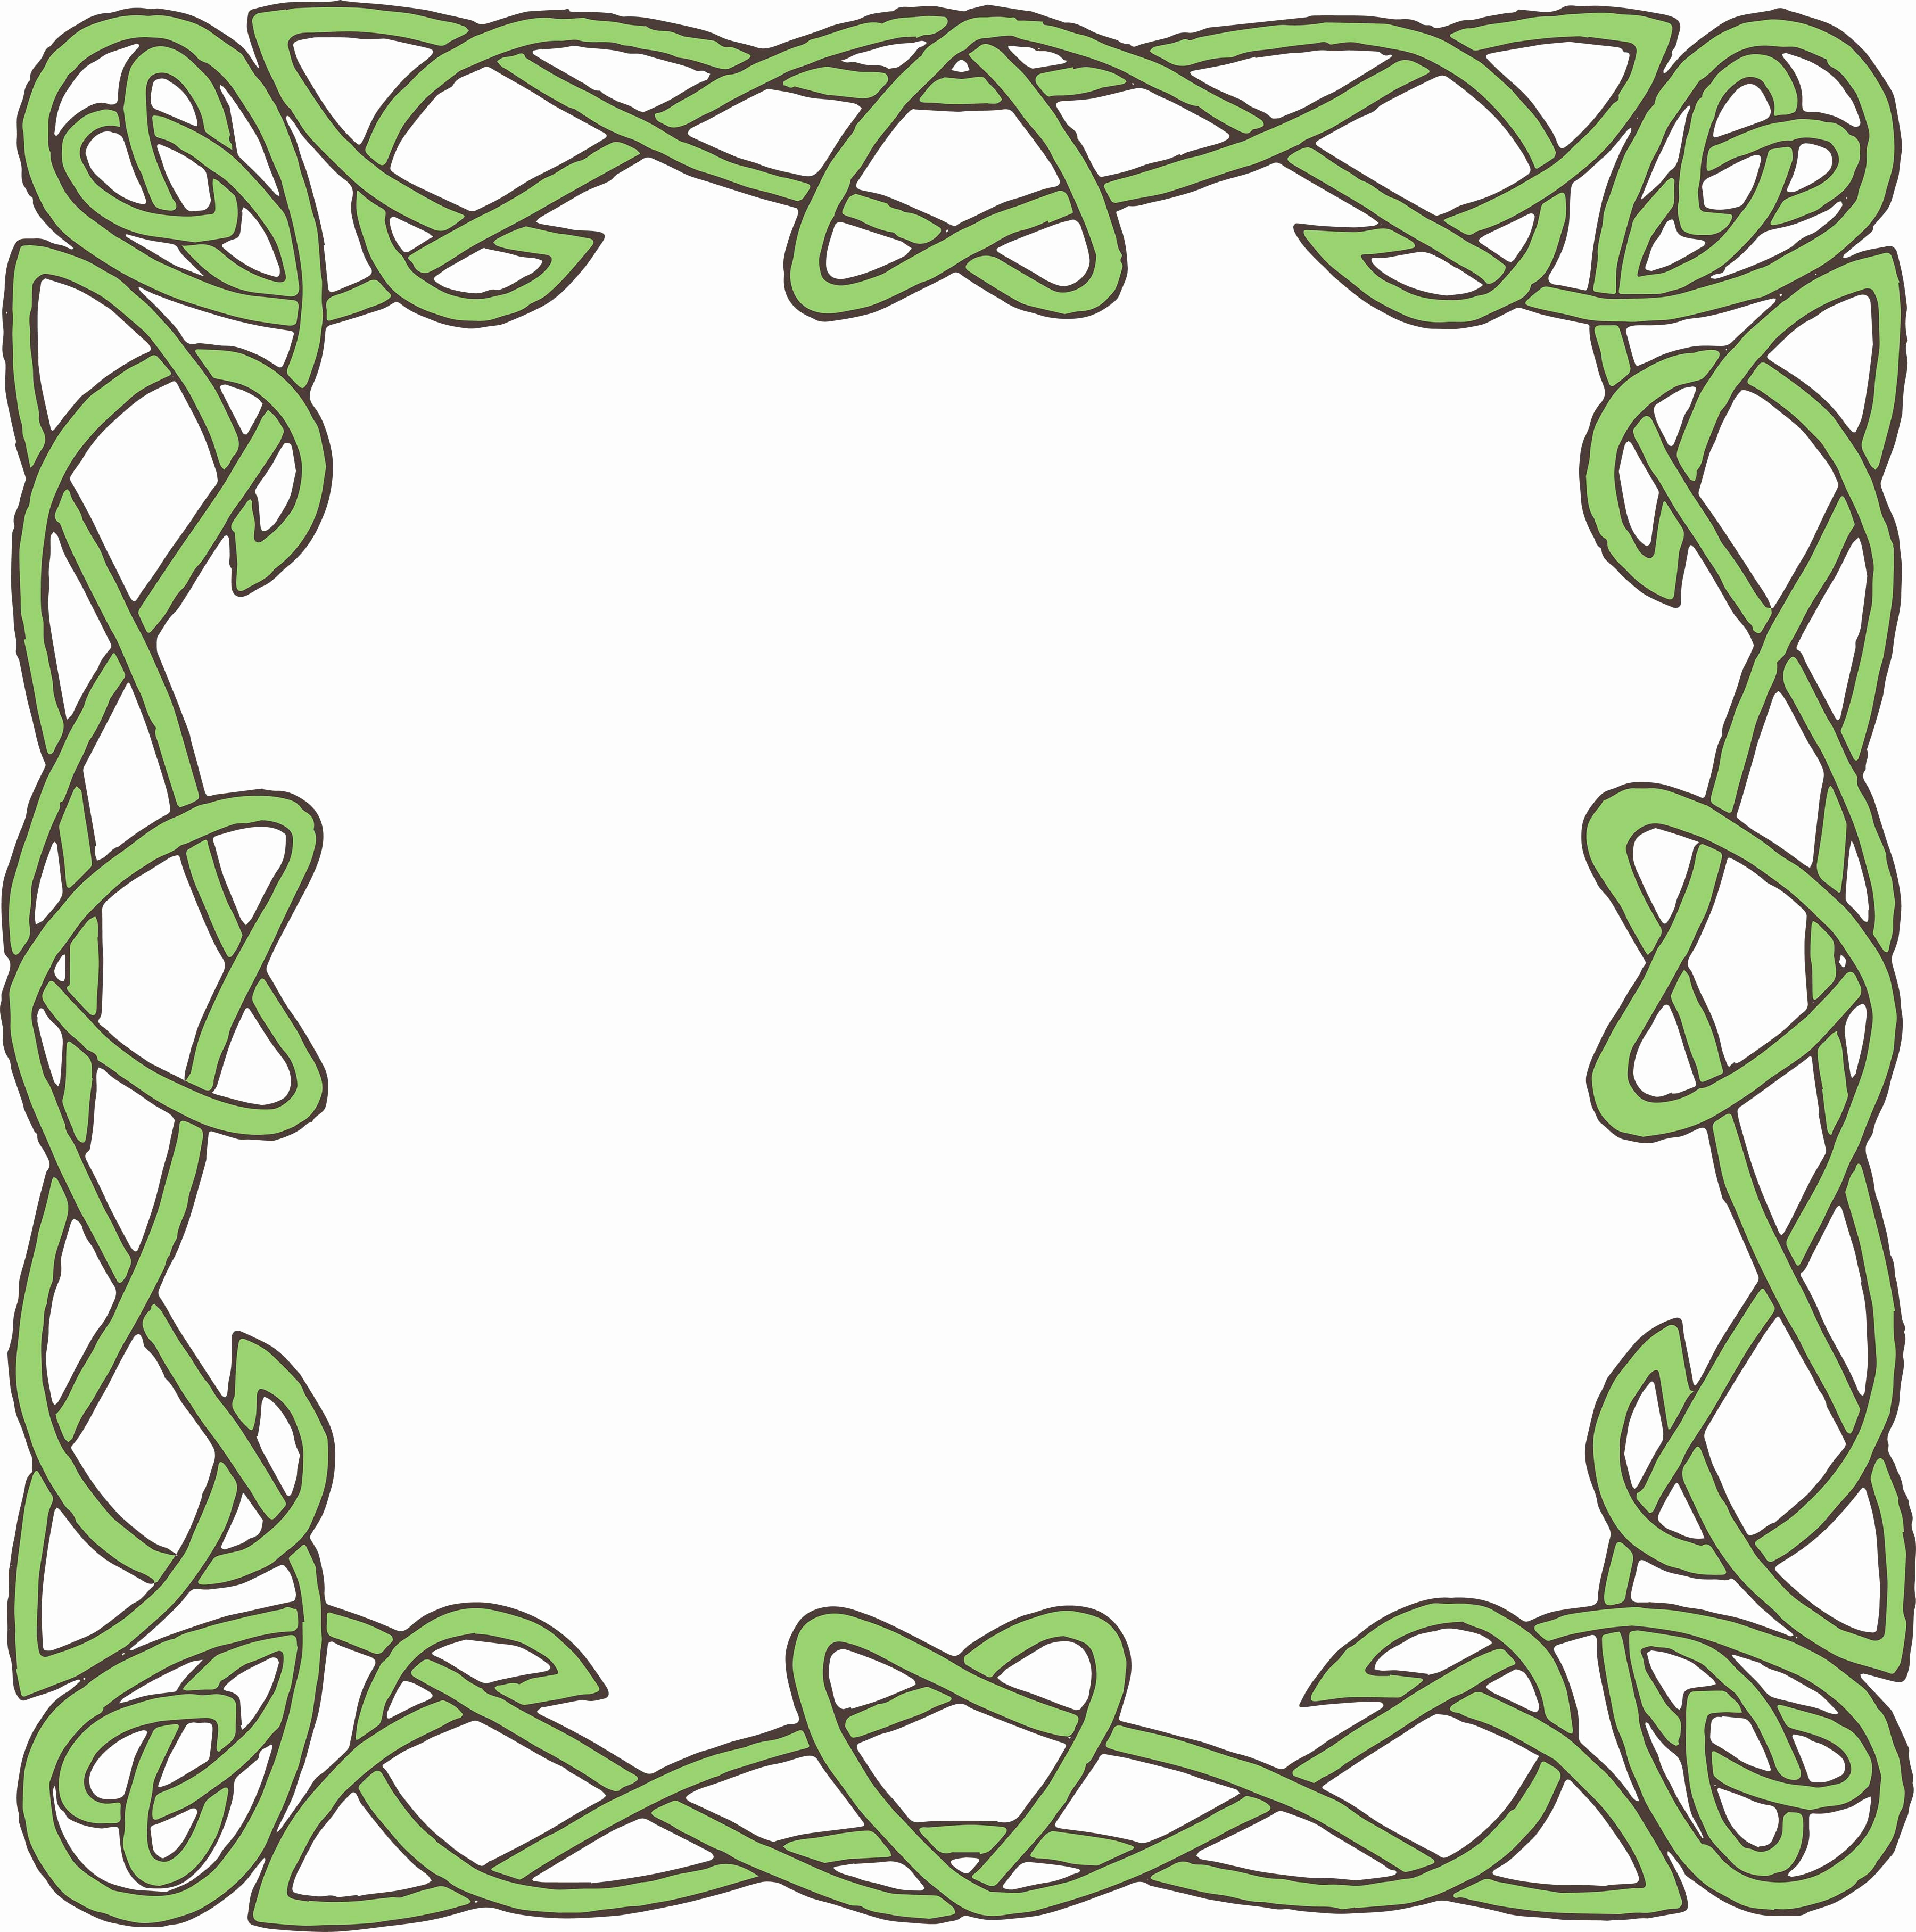 free celtic clipart at getdrawings com free for personal use free rh getdrawings com celtic corner border clipart celtic knot border clipart